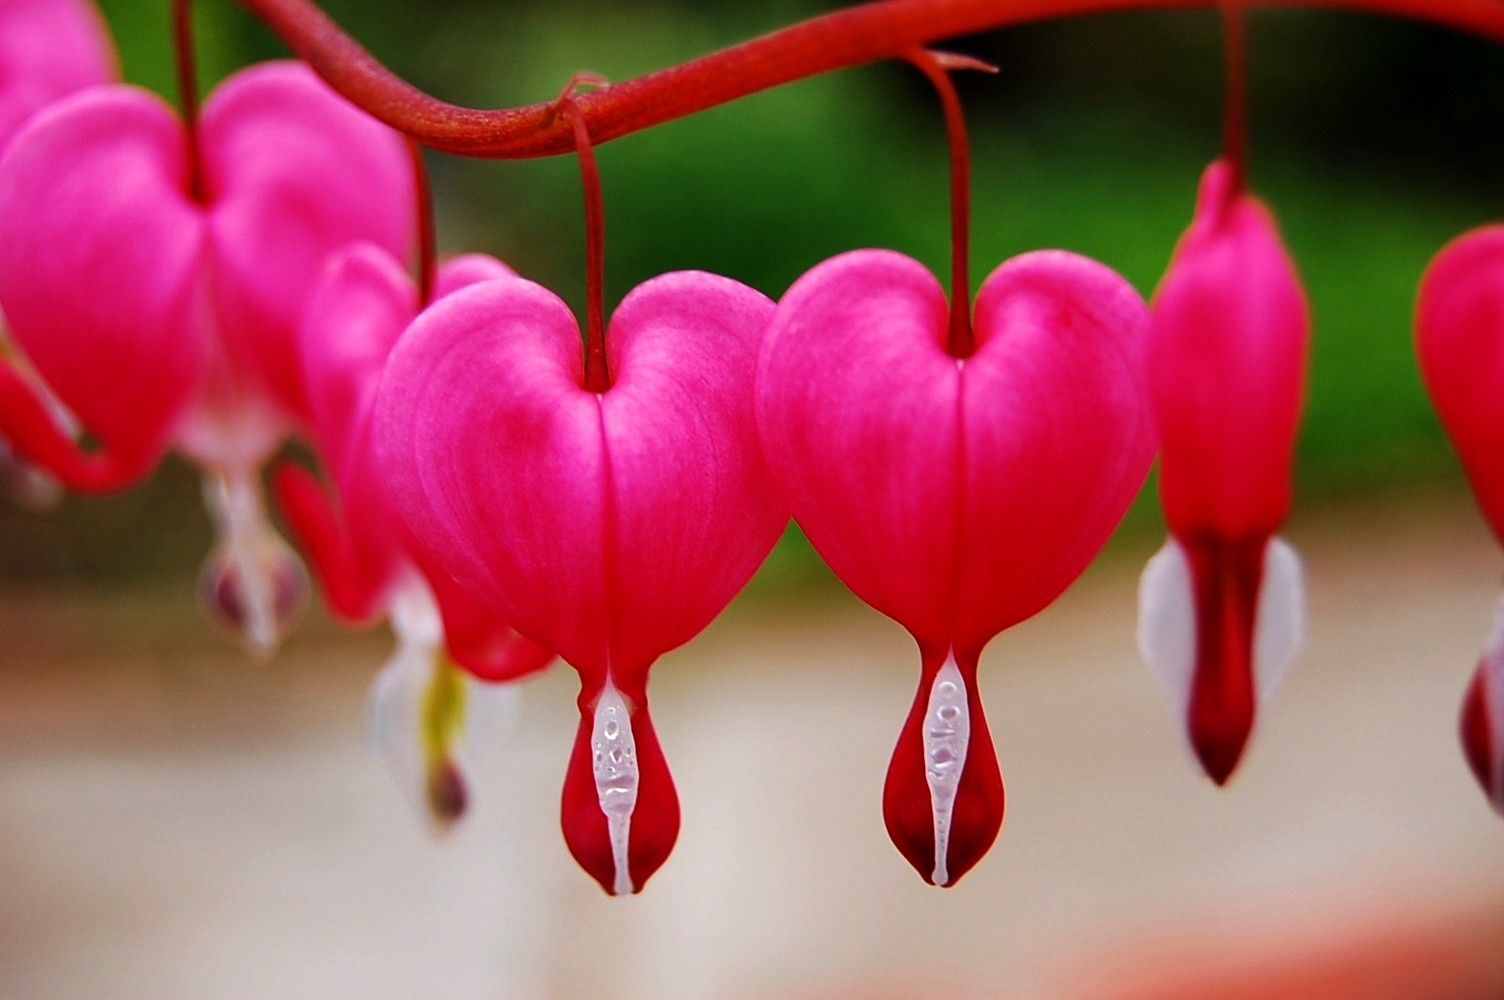 Flowers: Hang Coming Bleeding Spring Nature Heart Flowers Flower Hd ...